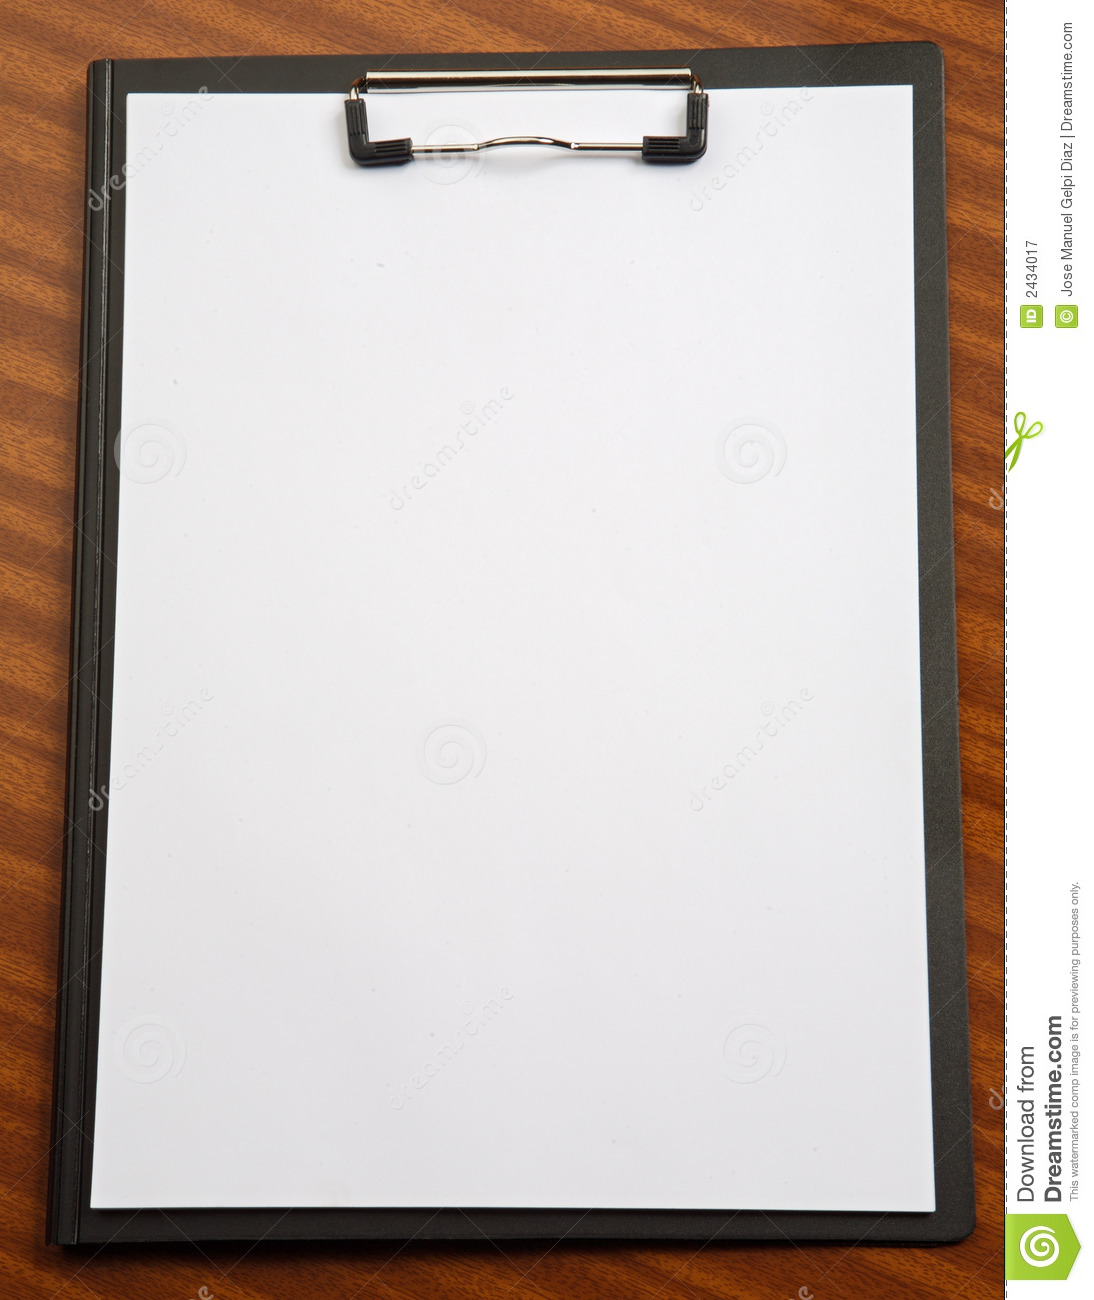 Clipboard royalty free stock photography image 2434017